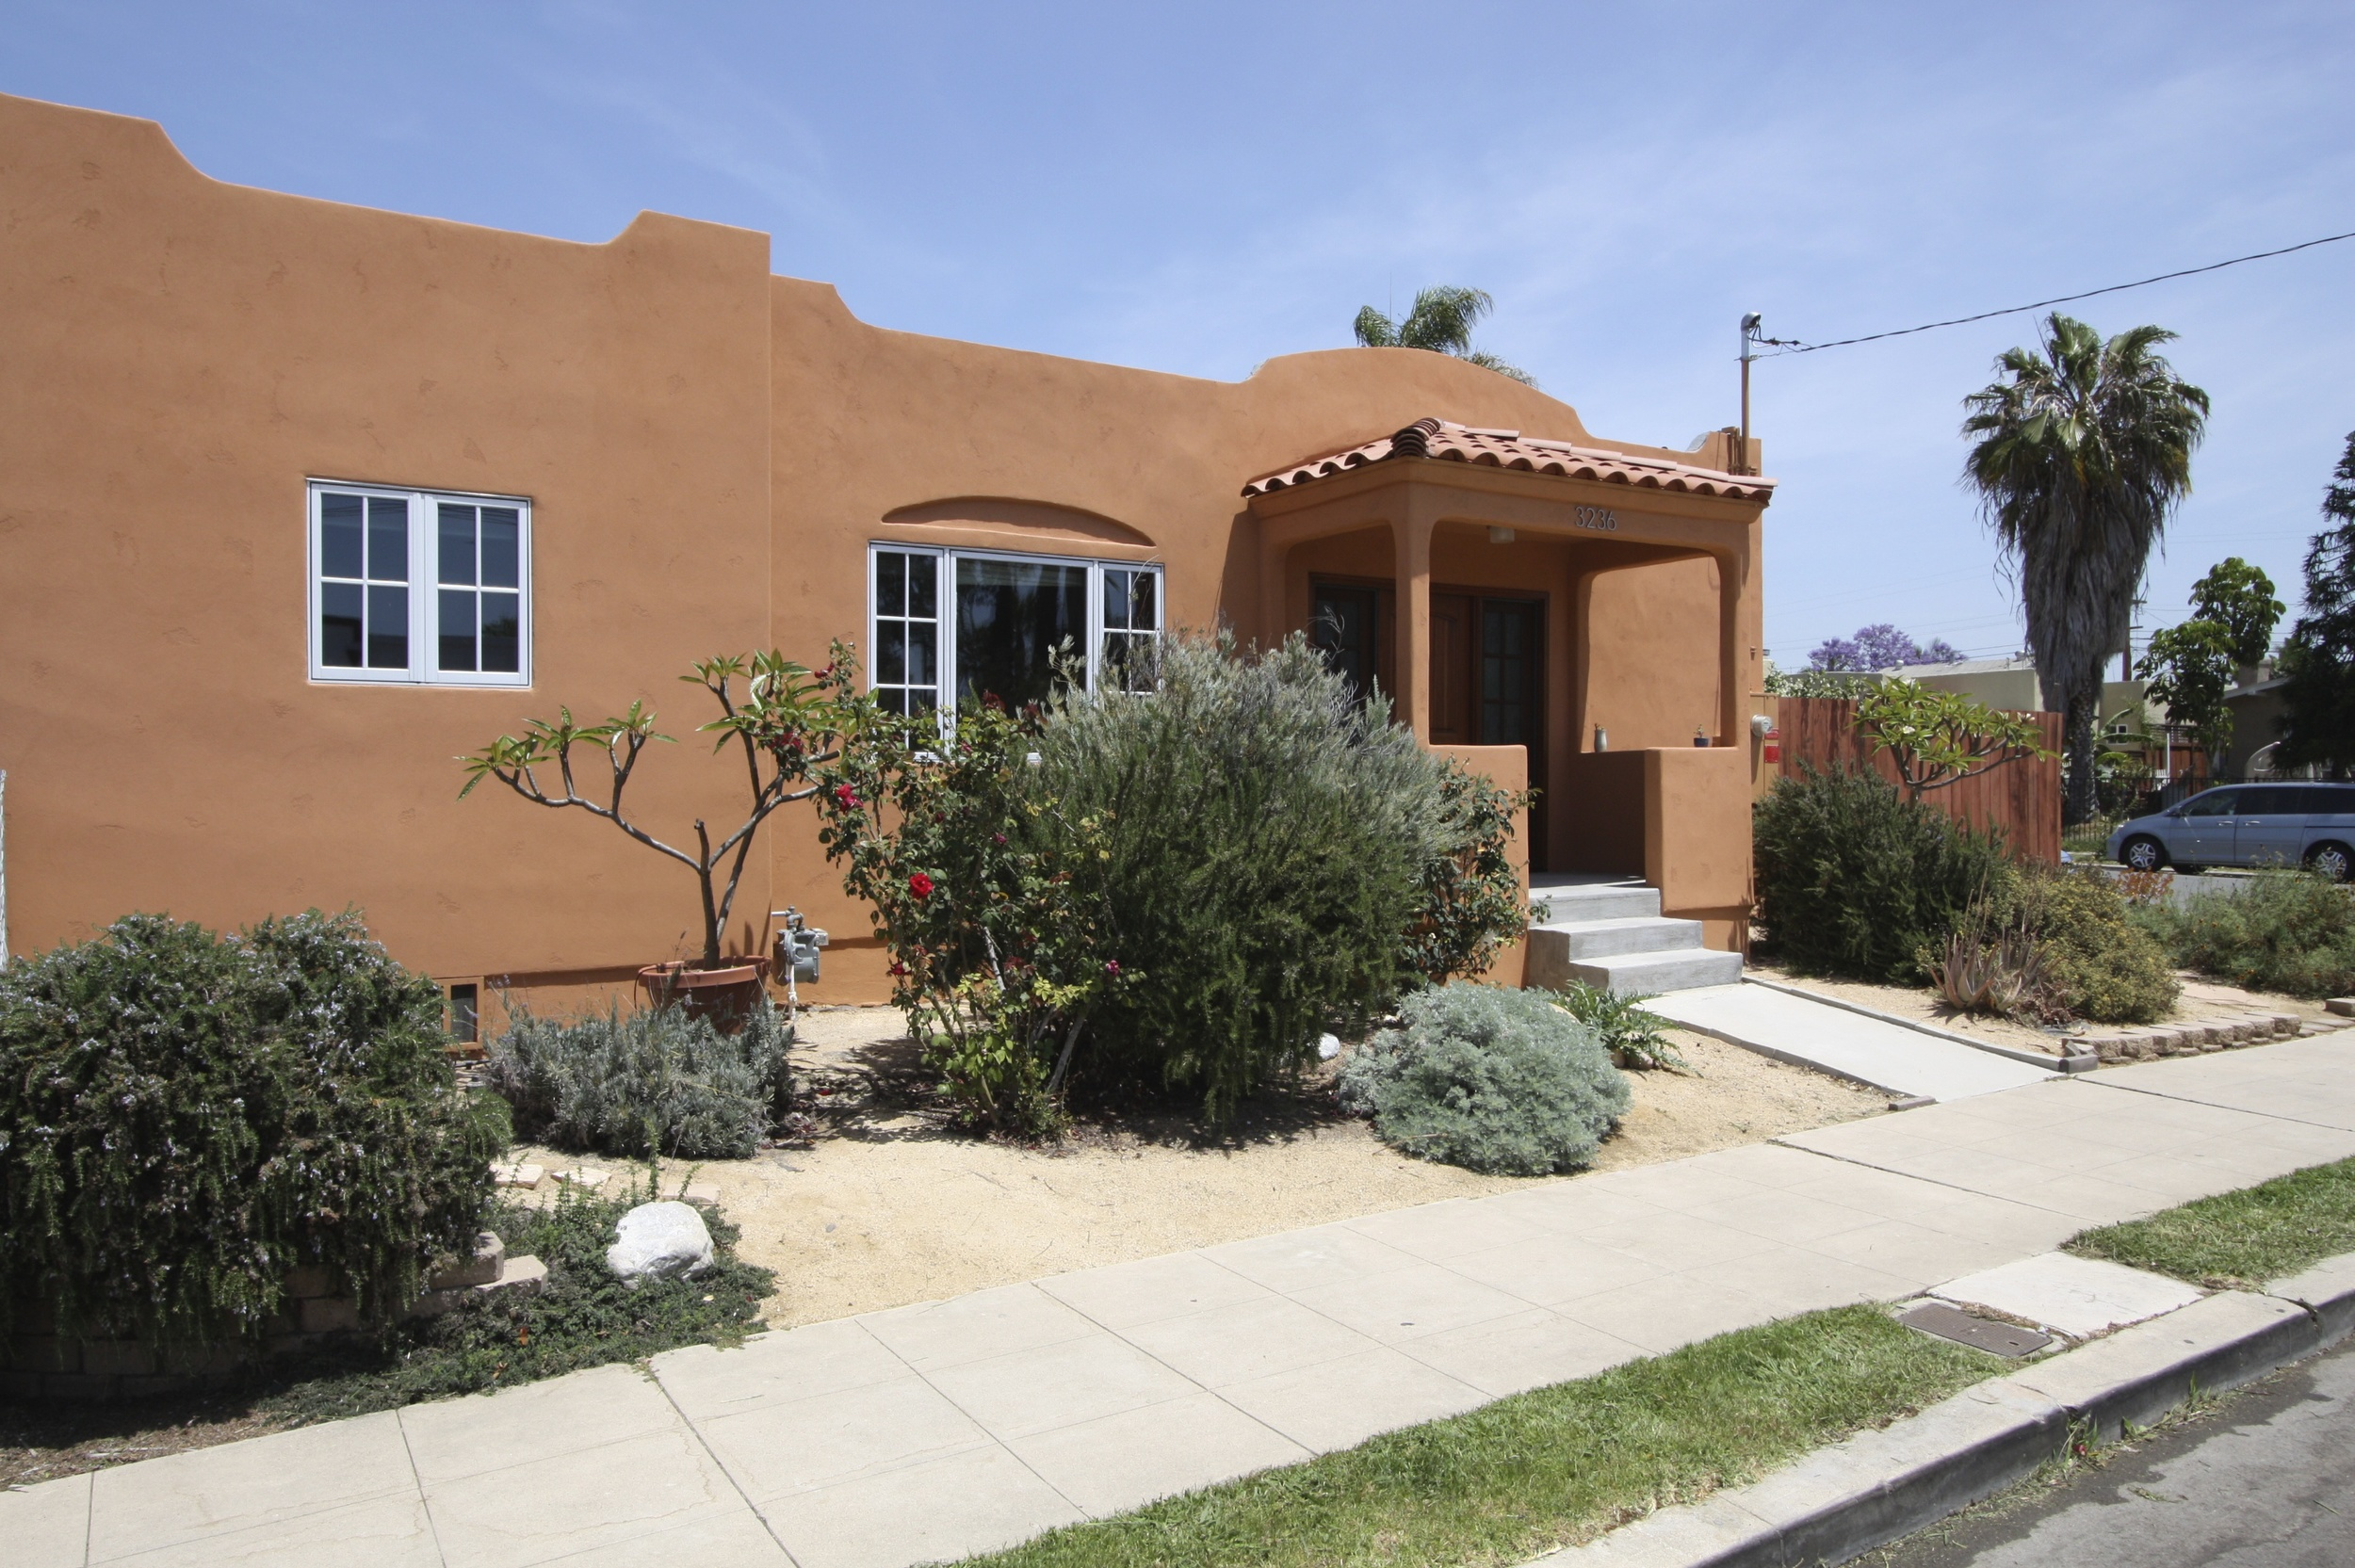 After: New stucco in a terra cotta color and new clay tiles on porch roof really compliment the style of the house.